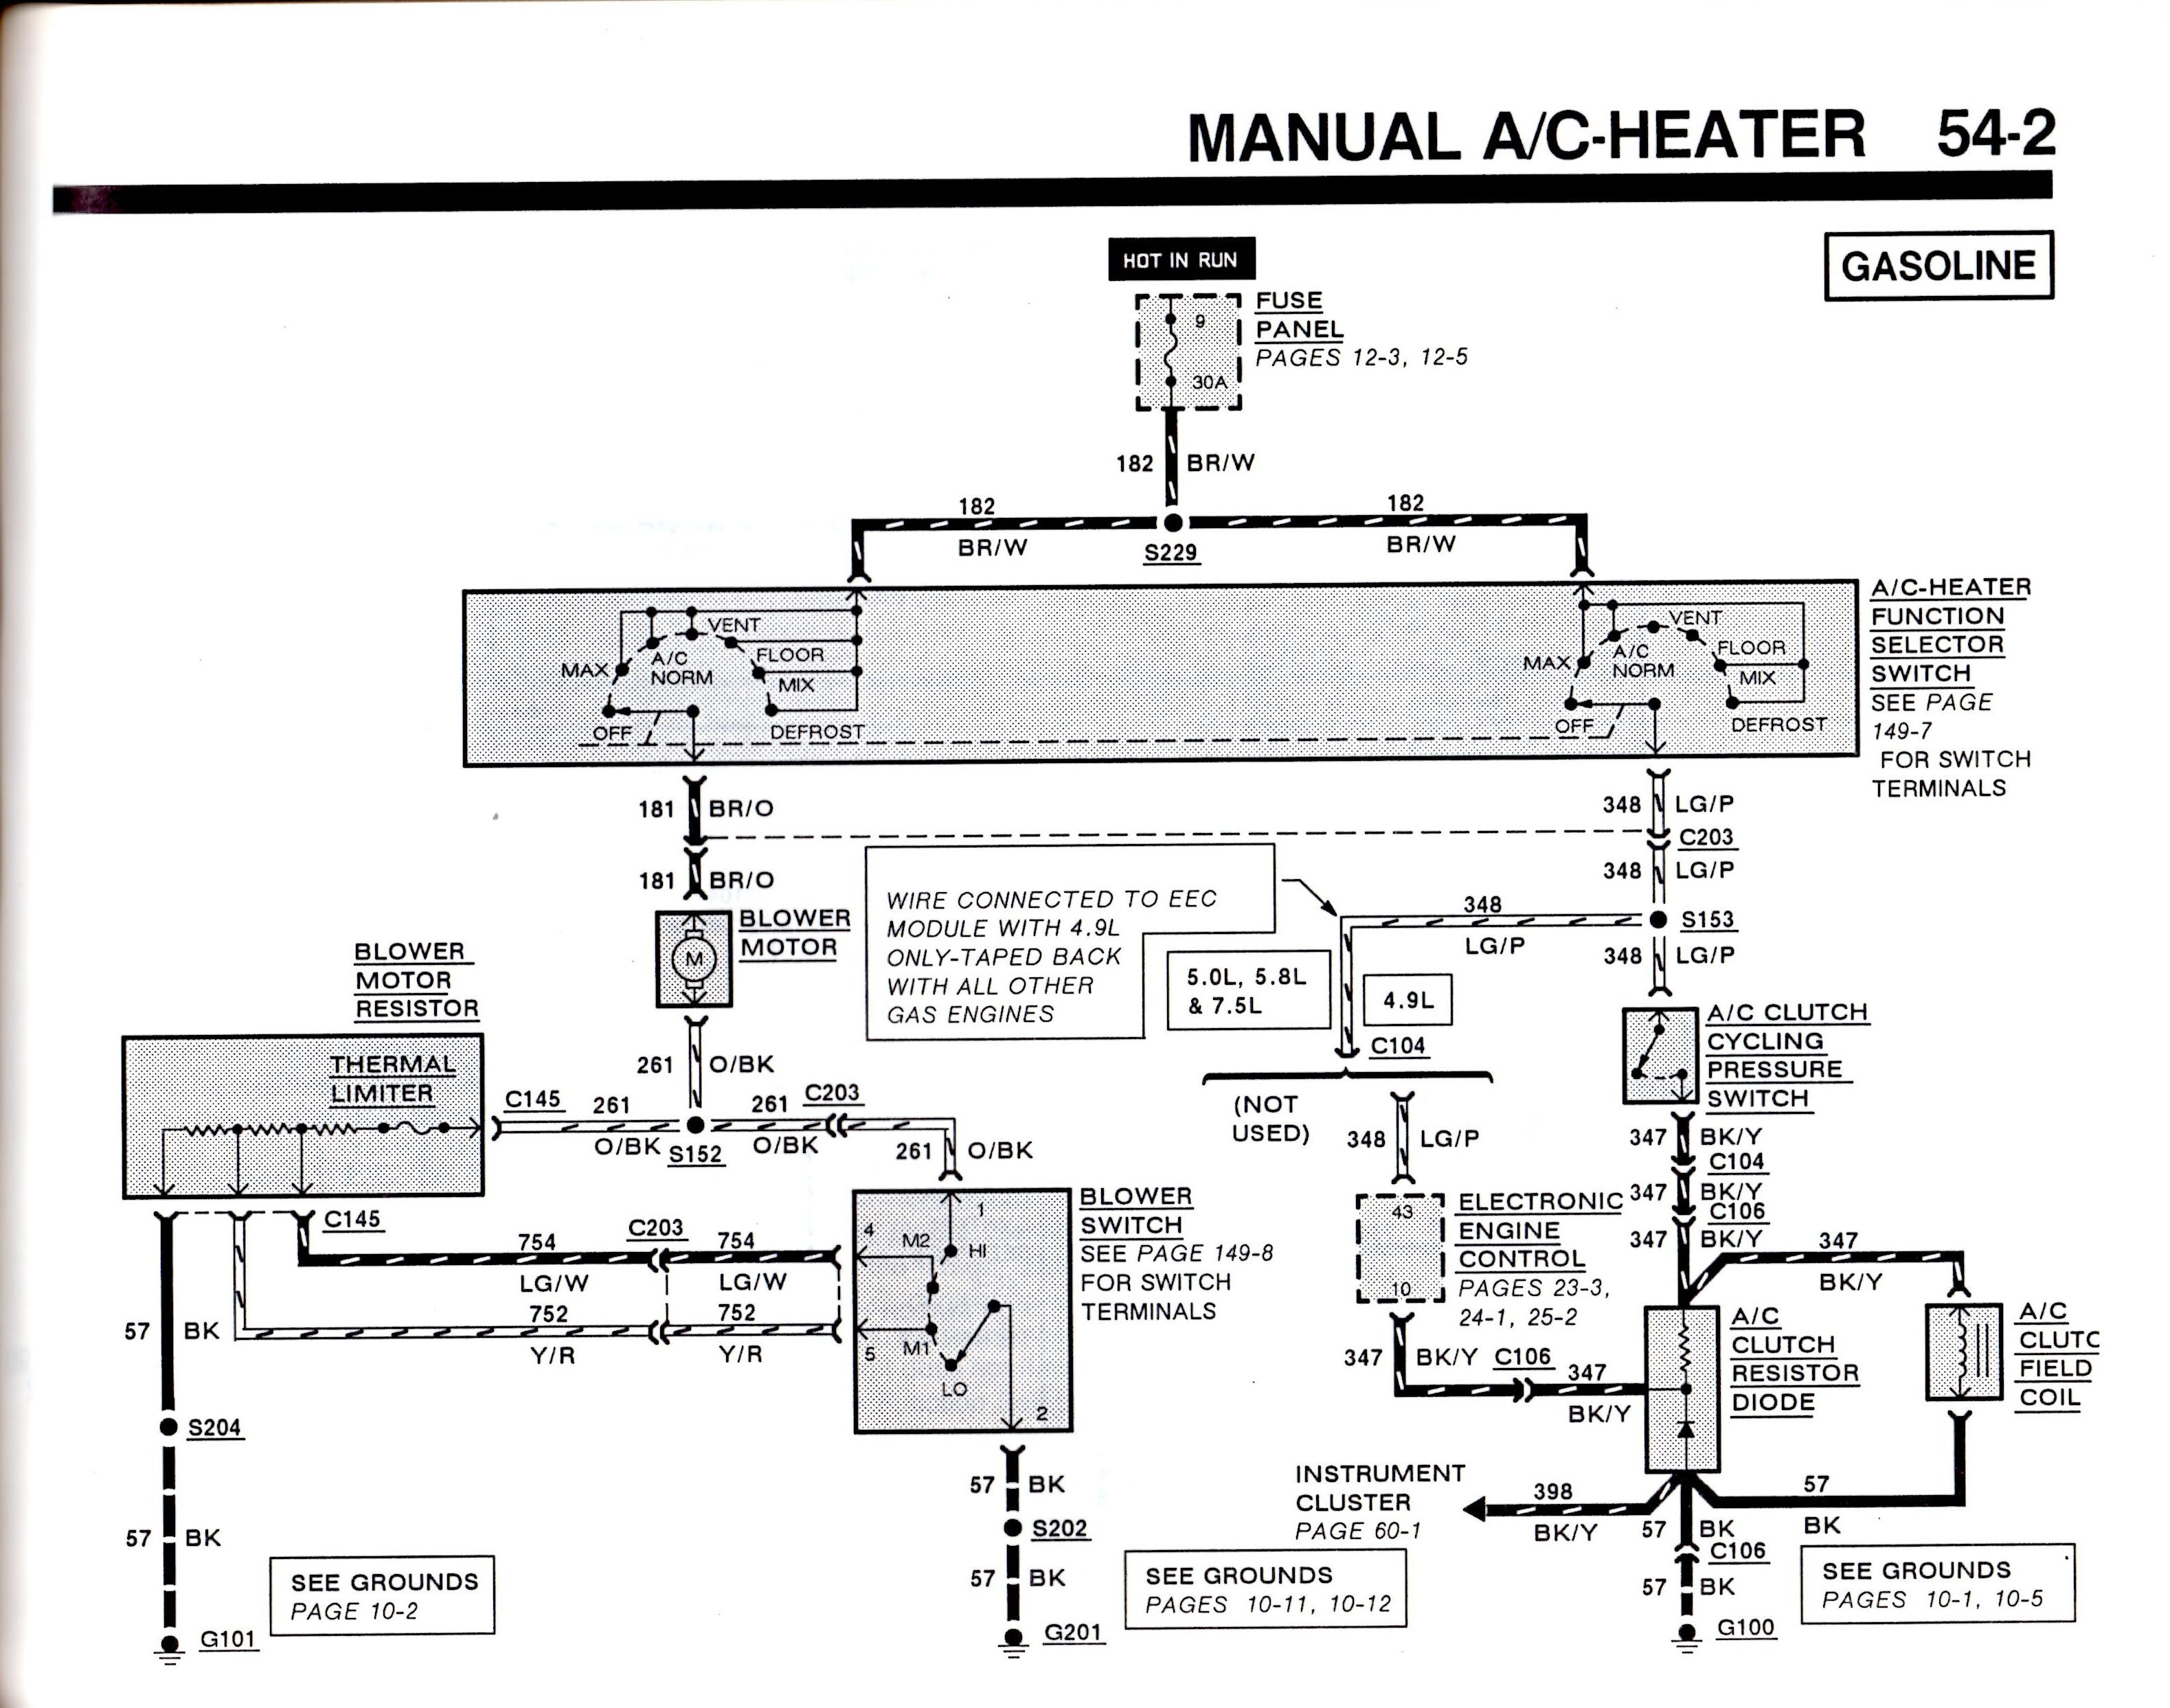 1989 Dodge D150 Ignition Wiring Diagram Will Be A Ramcharger Ecu Heater 1983 Ford Bronco Get Free Image For Stereo